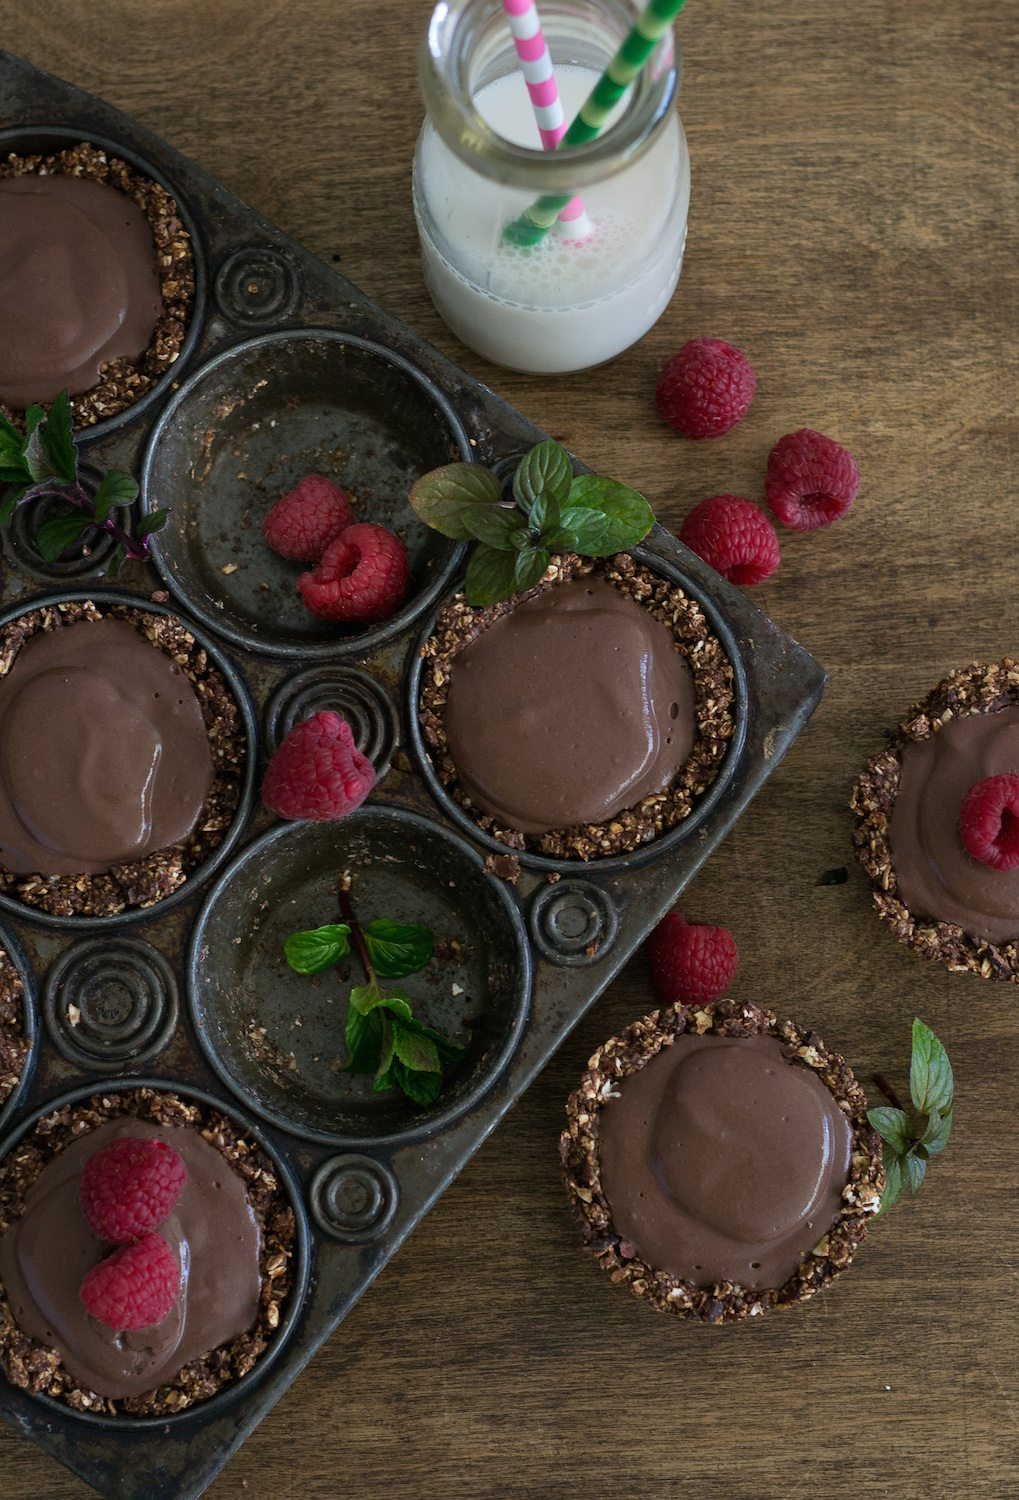 Sugar-free Mini Chocolate Mint Pudding Pies by An Unrefined Vegan